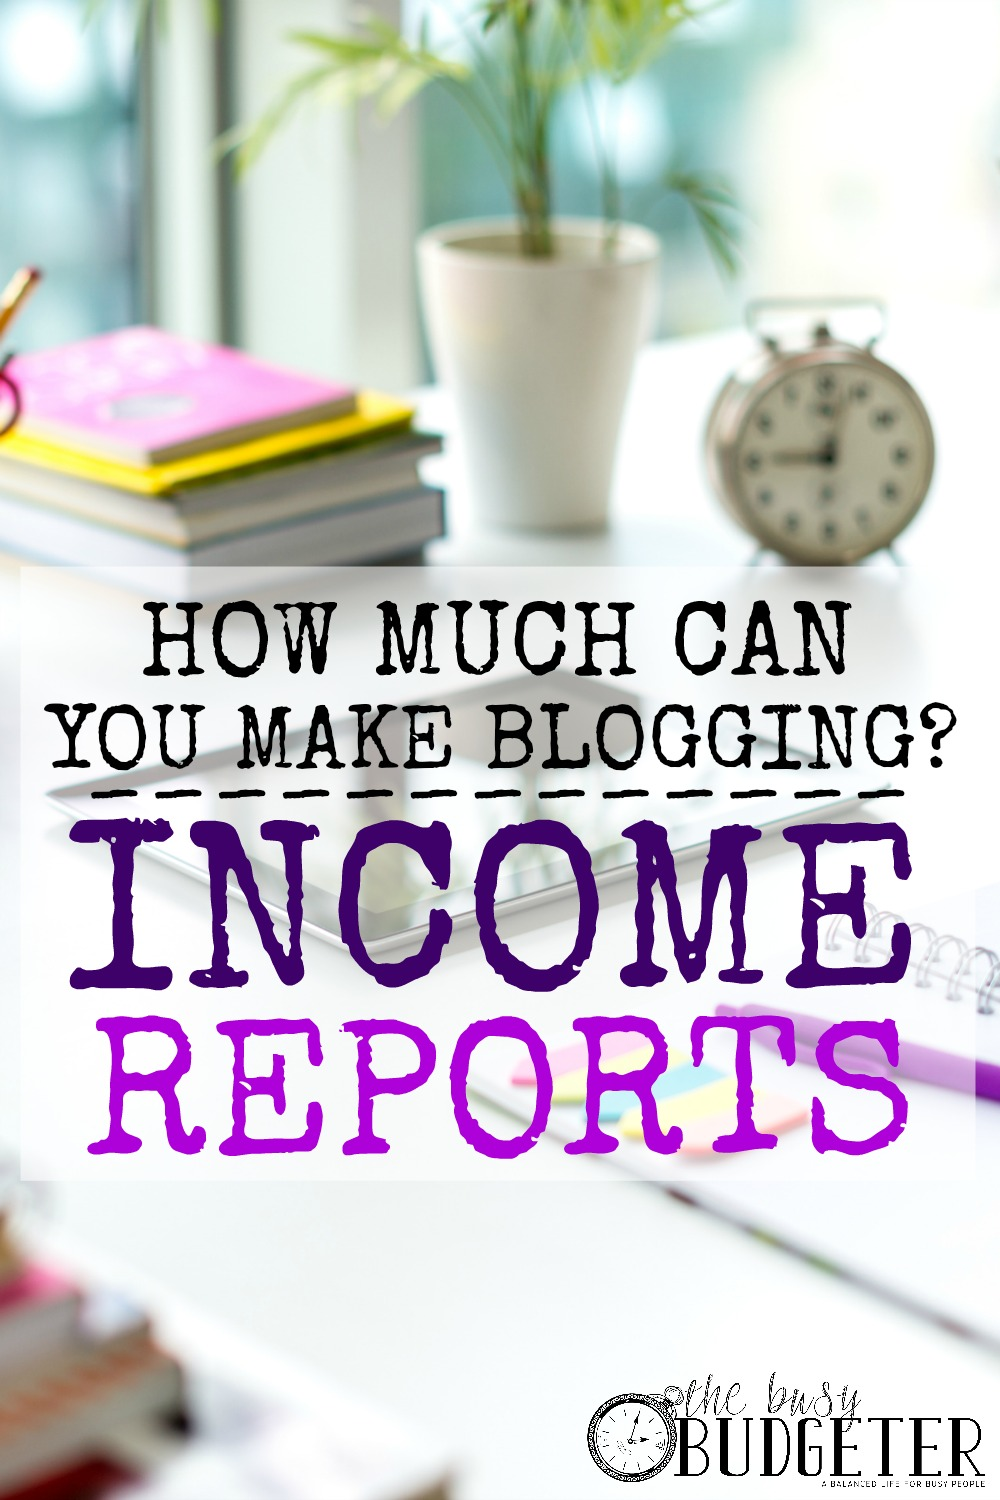 Income Reports for the Last Couple Years - Awesome info on how she was able to go from, like, no money to literally tens of thousands of dollars a month. So inspiring!